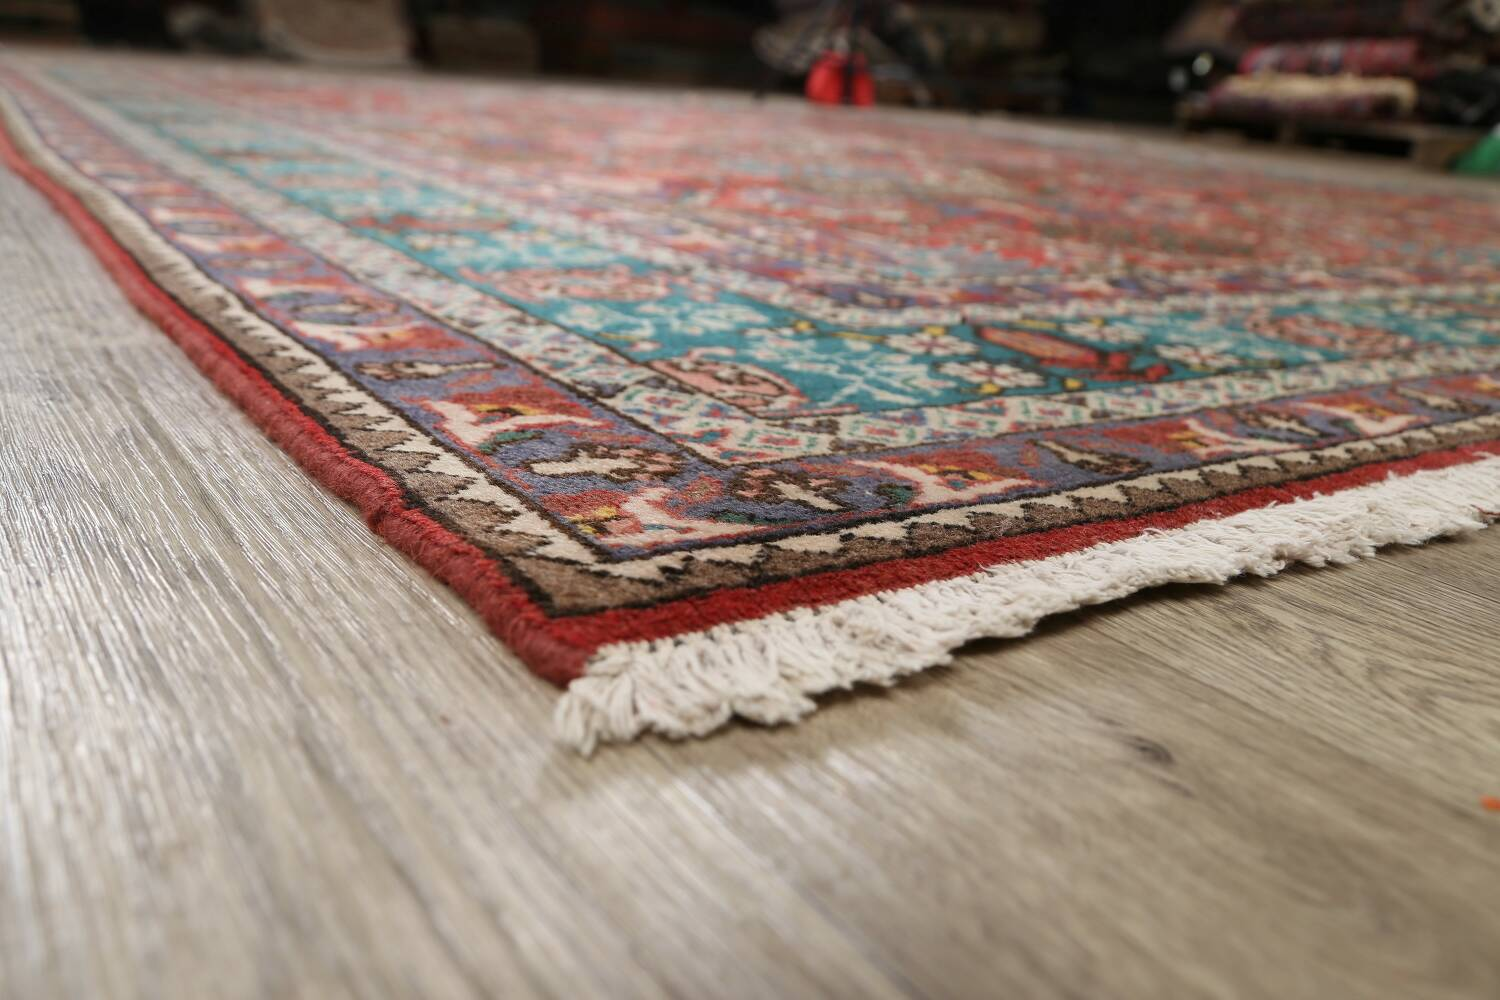 All-Over Pictorial Tabriz Persian Area Rug 9x11 image 6